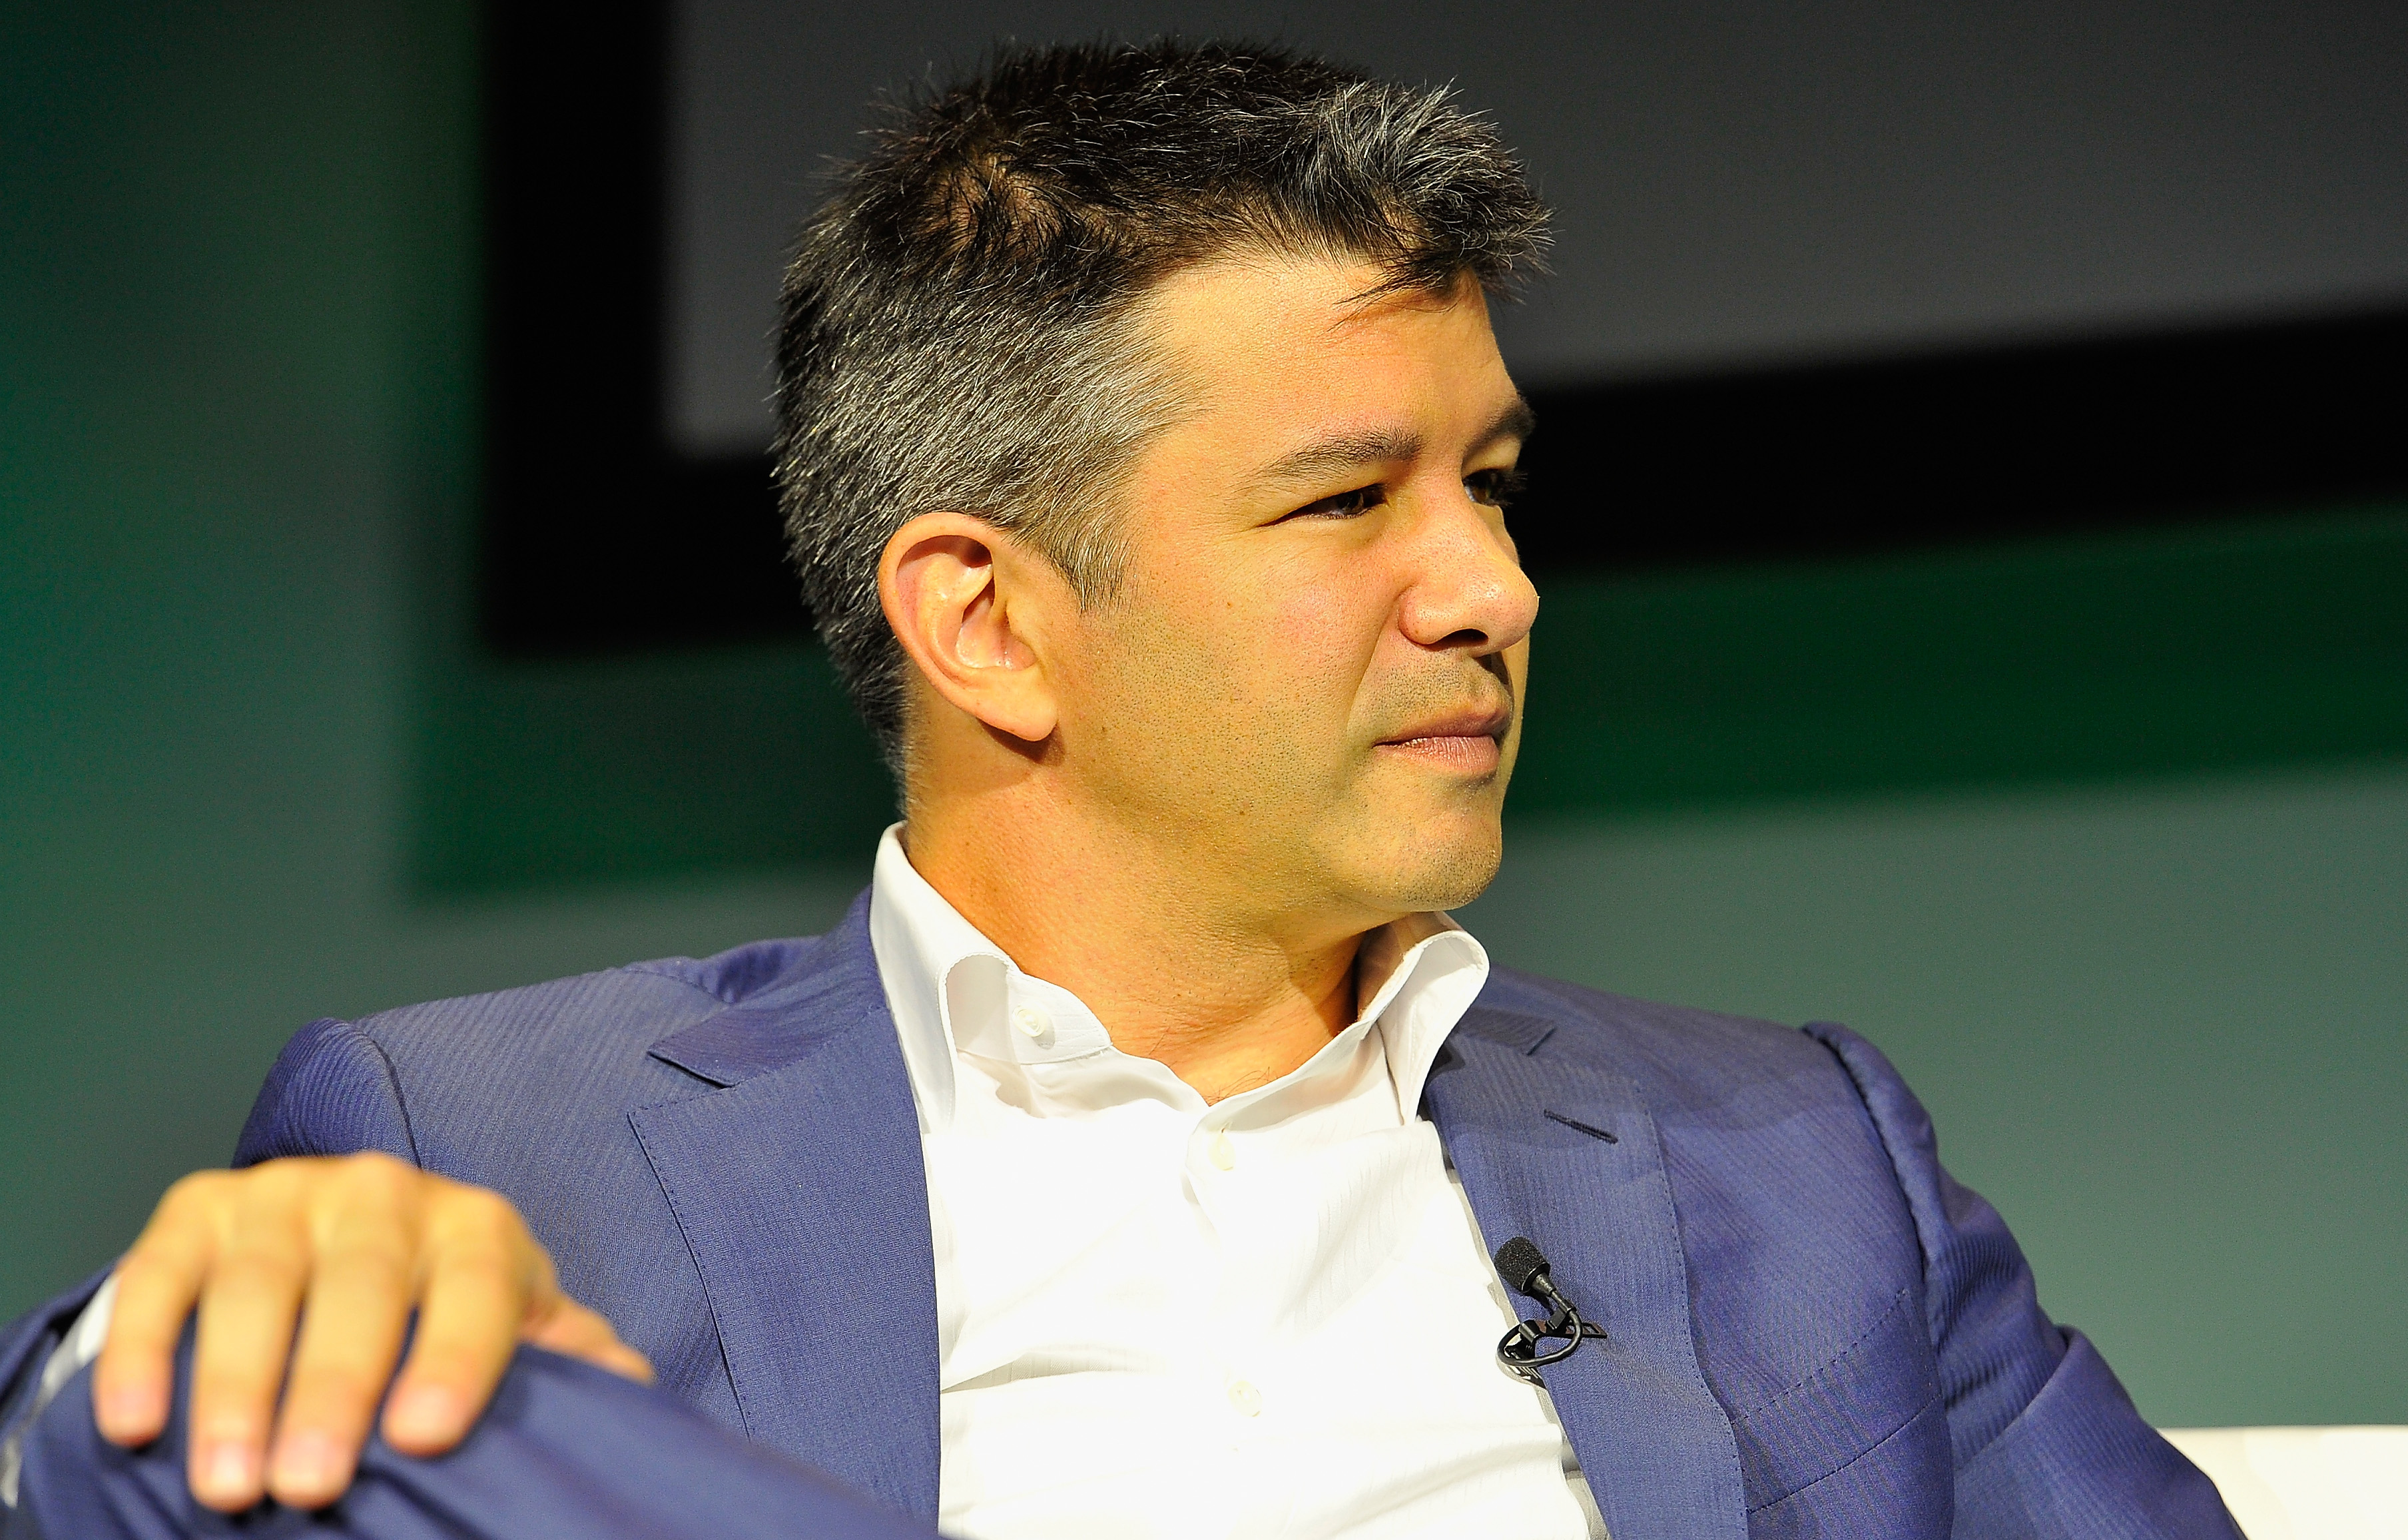 Travis Kalanick speaks onstage at TechCrunch Discrupt on September 8, 2014 in San Francisco, California.